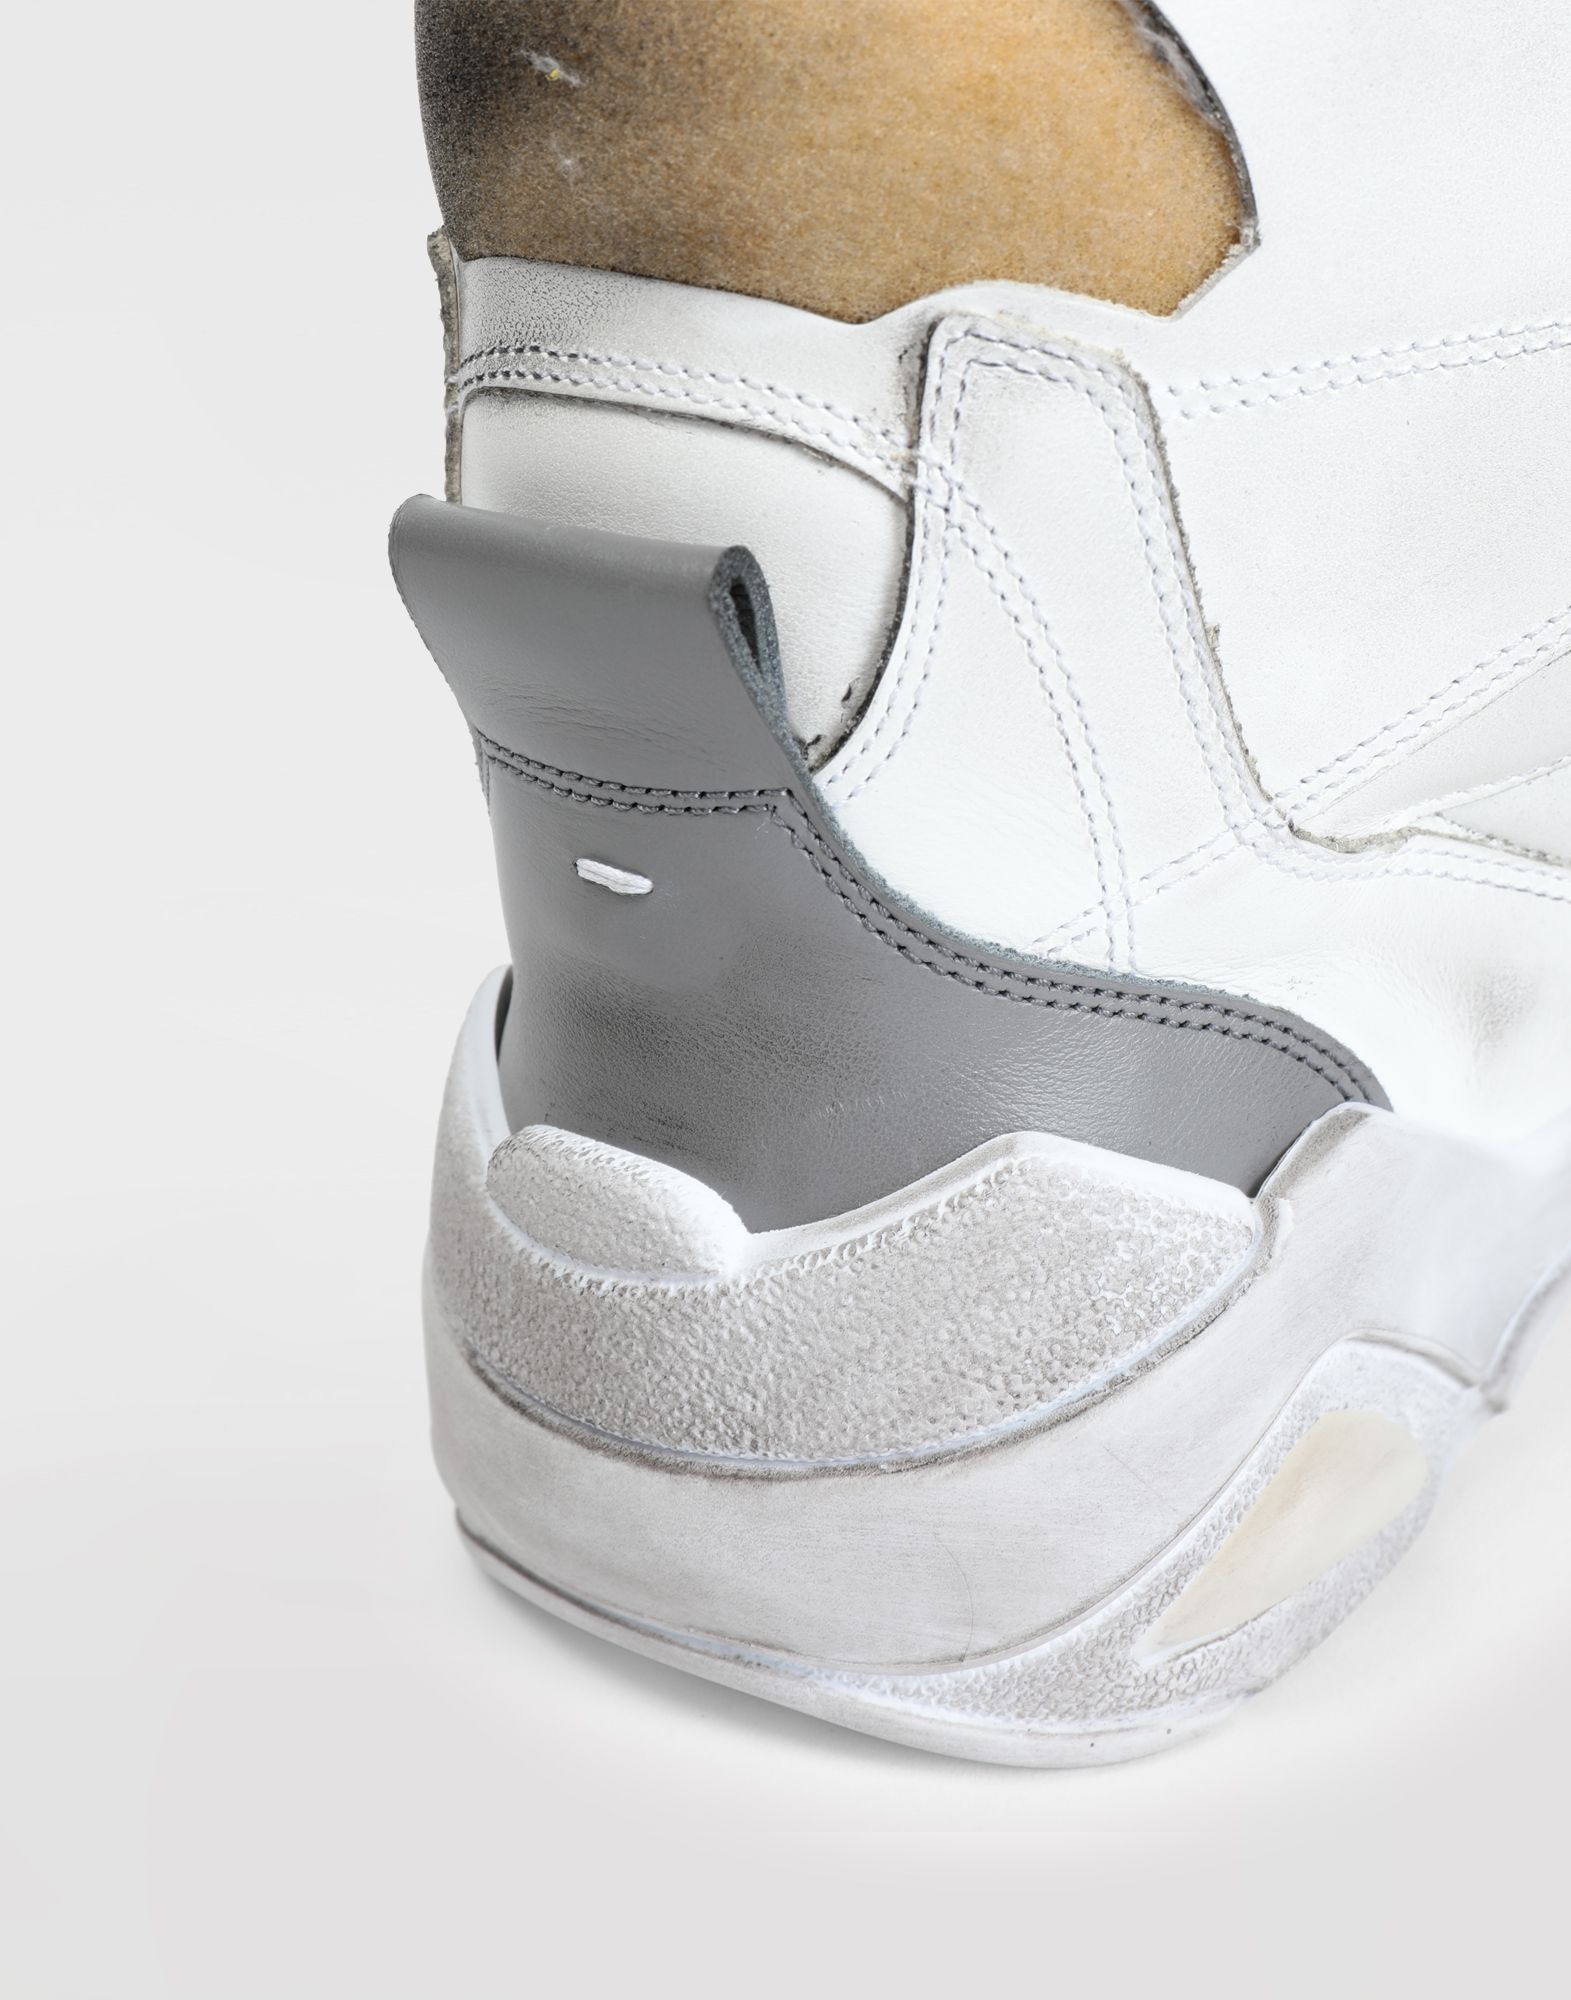 MAISON MARGIELA High-top 'Retro Fit' sneakers Sneakers Woman b